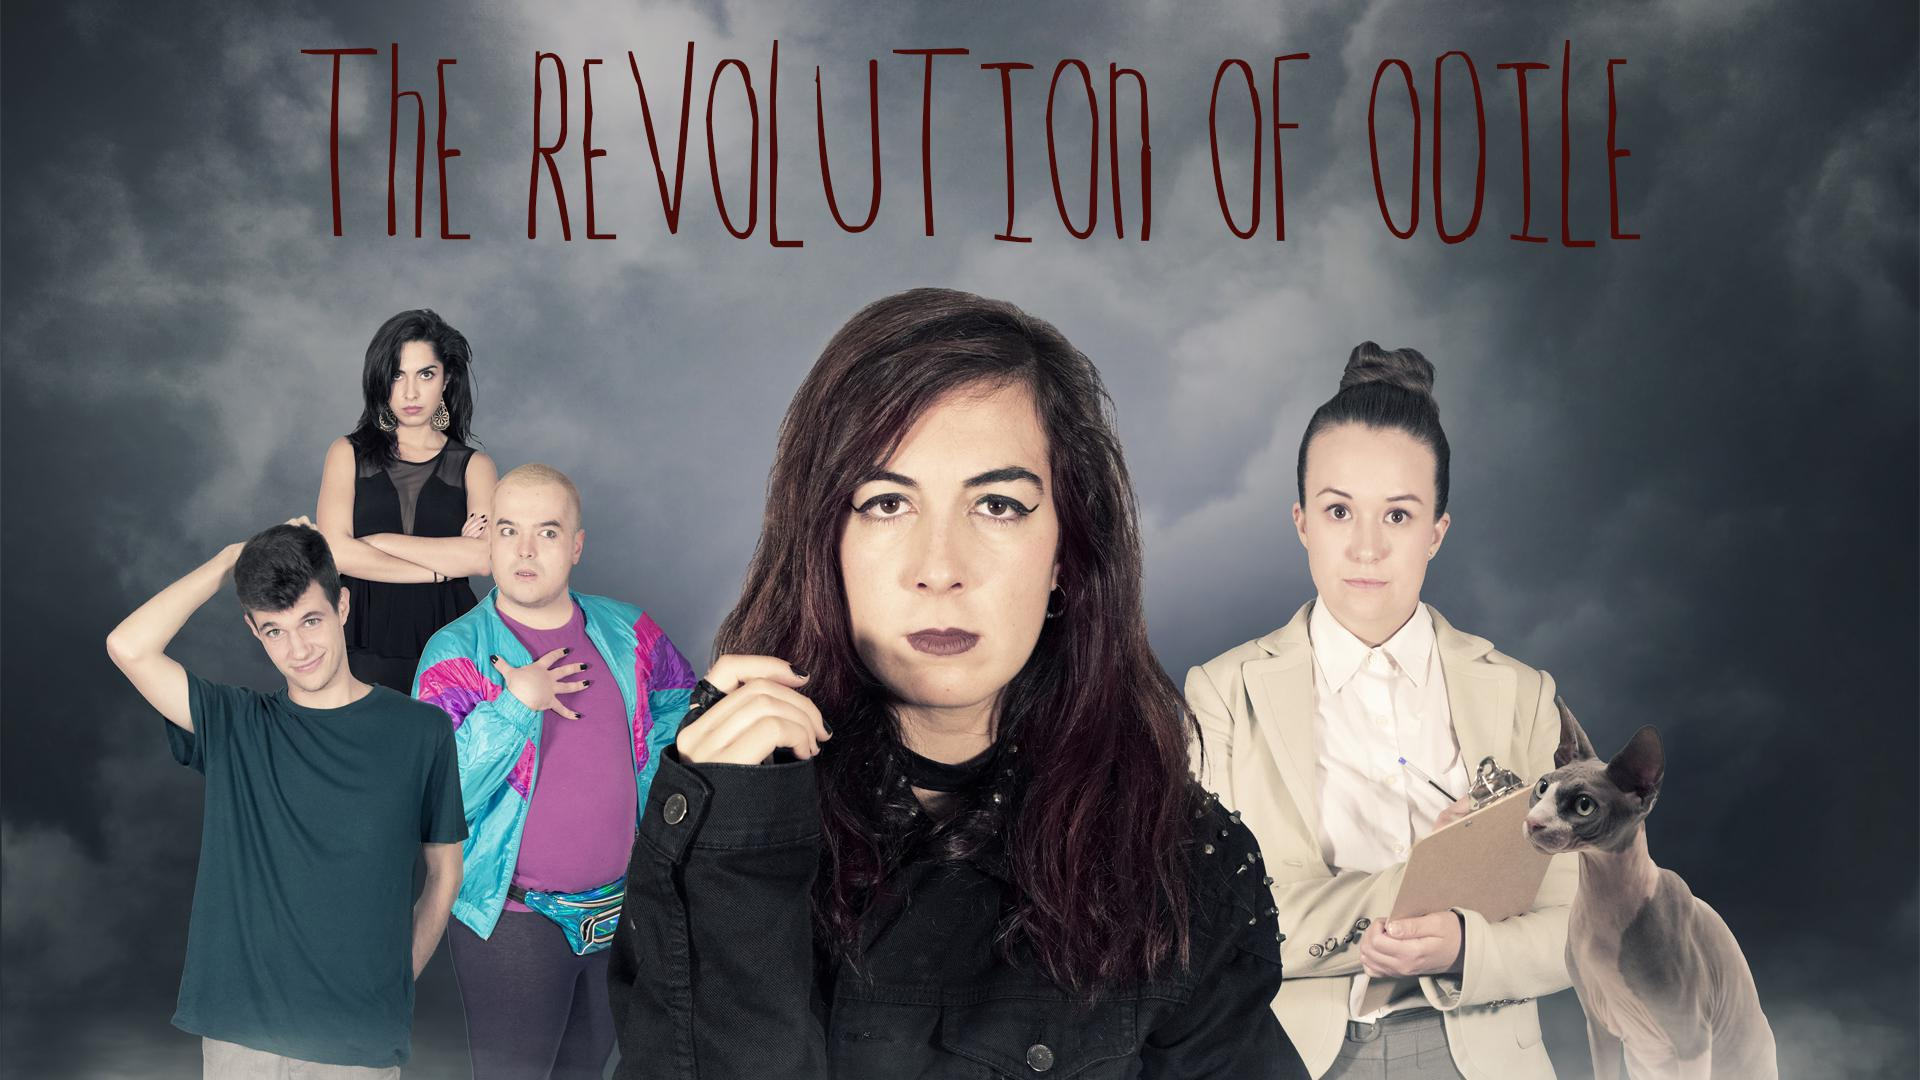 The Revolution of Odile